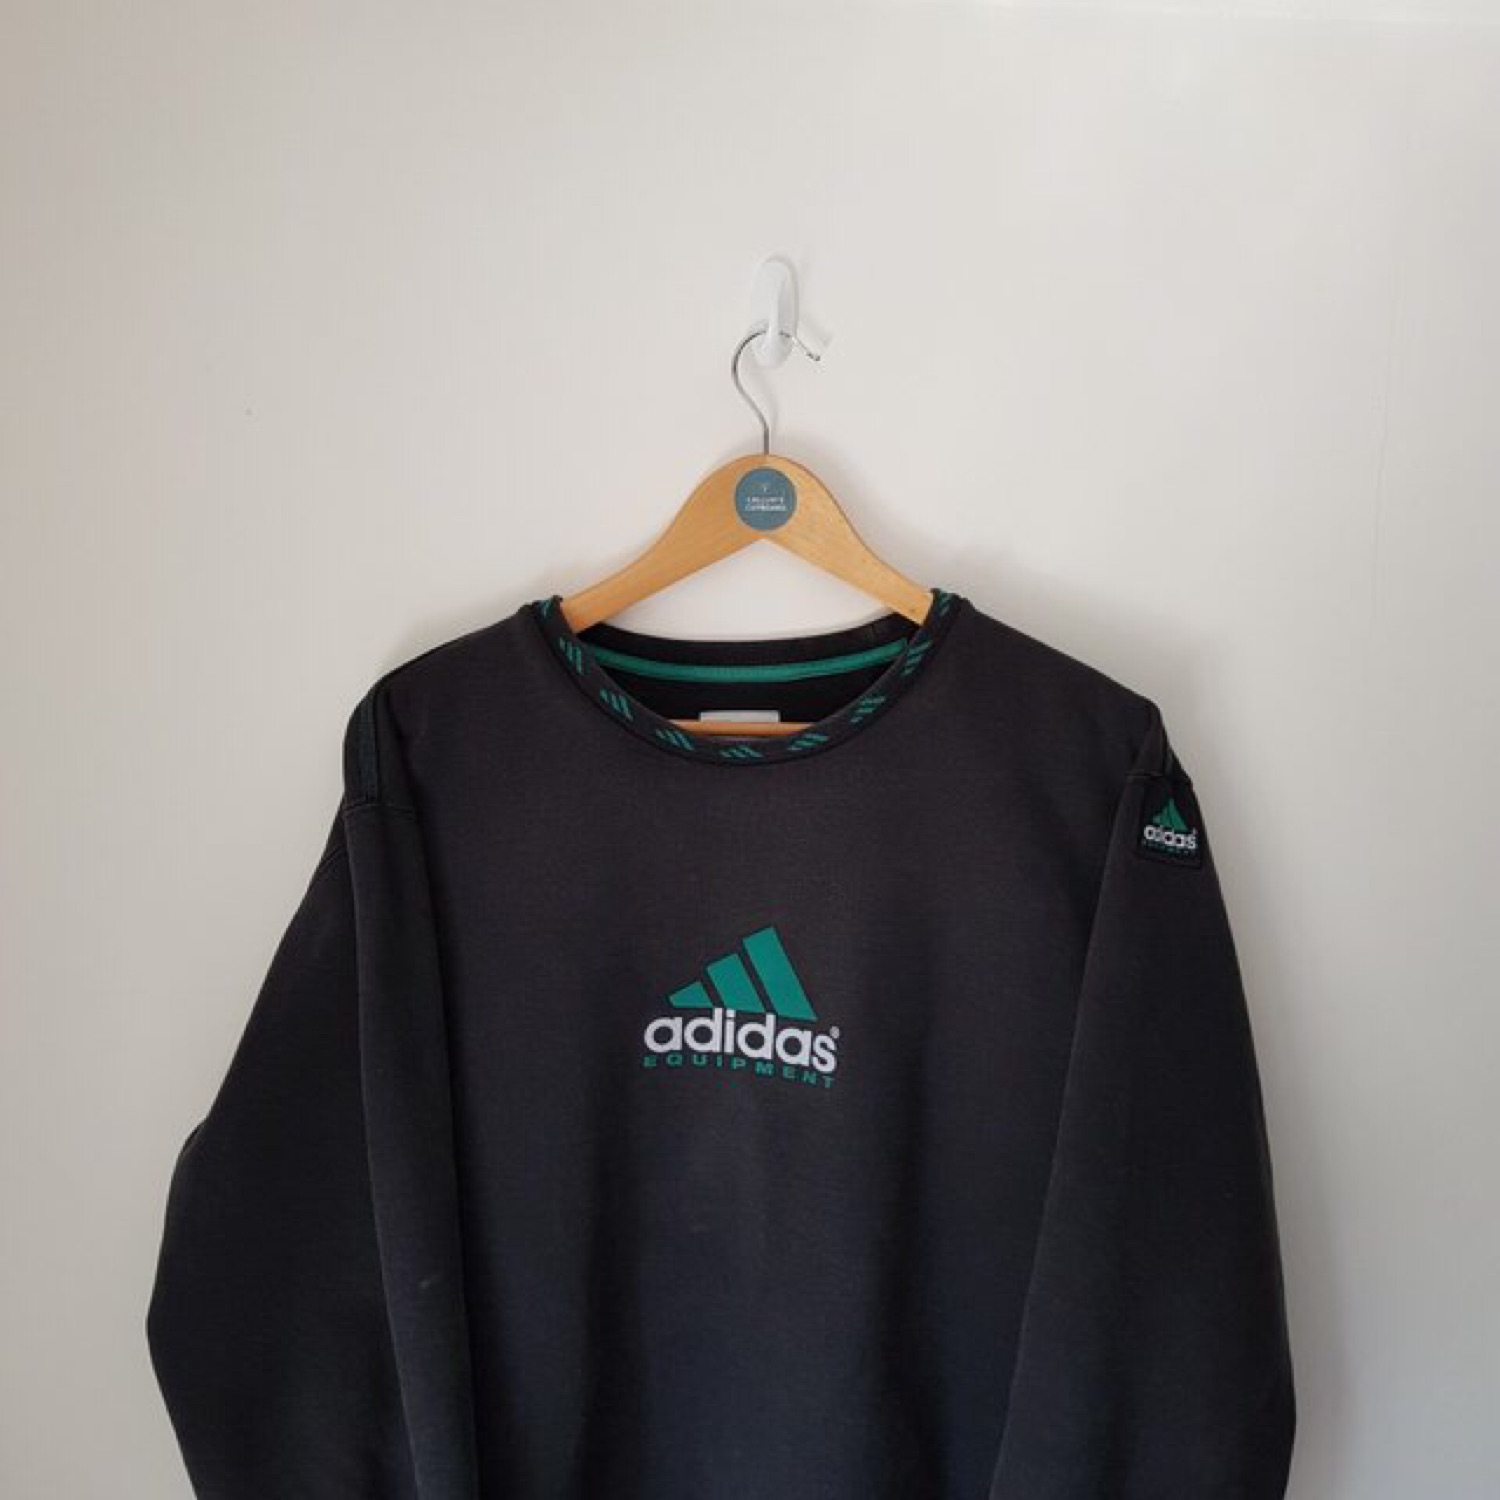 Adidas Equipment Pullover Sweatshirt Black Green